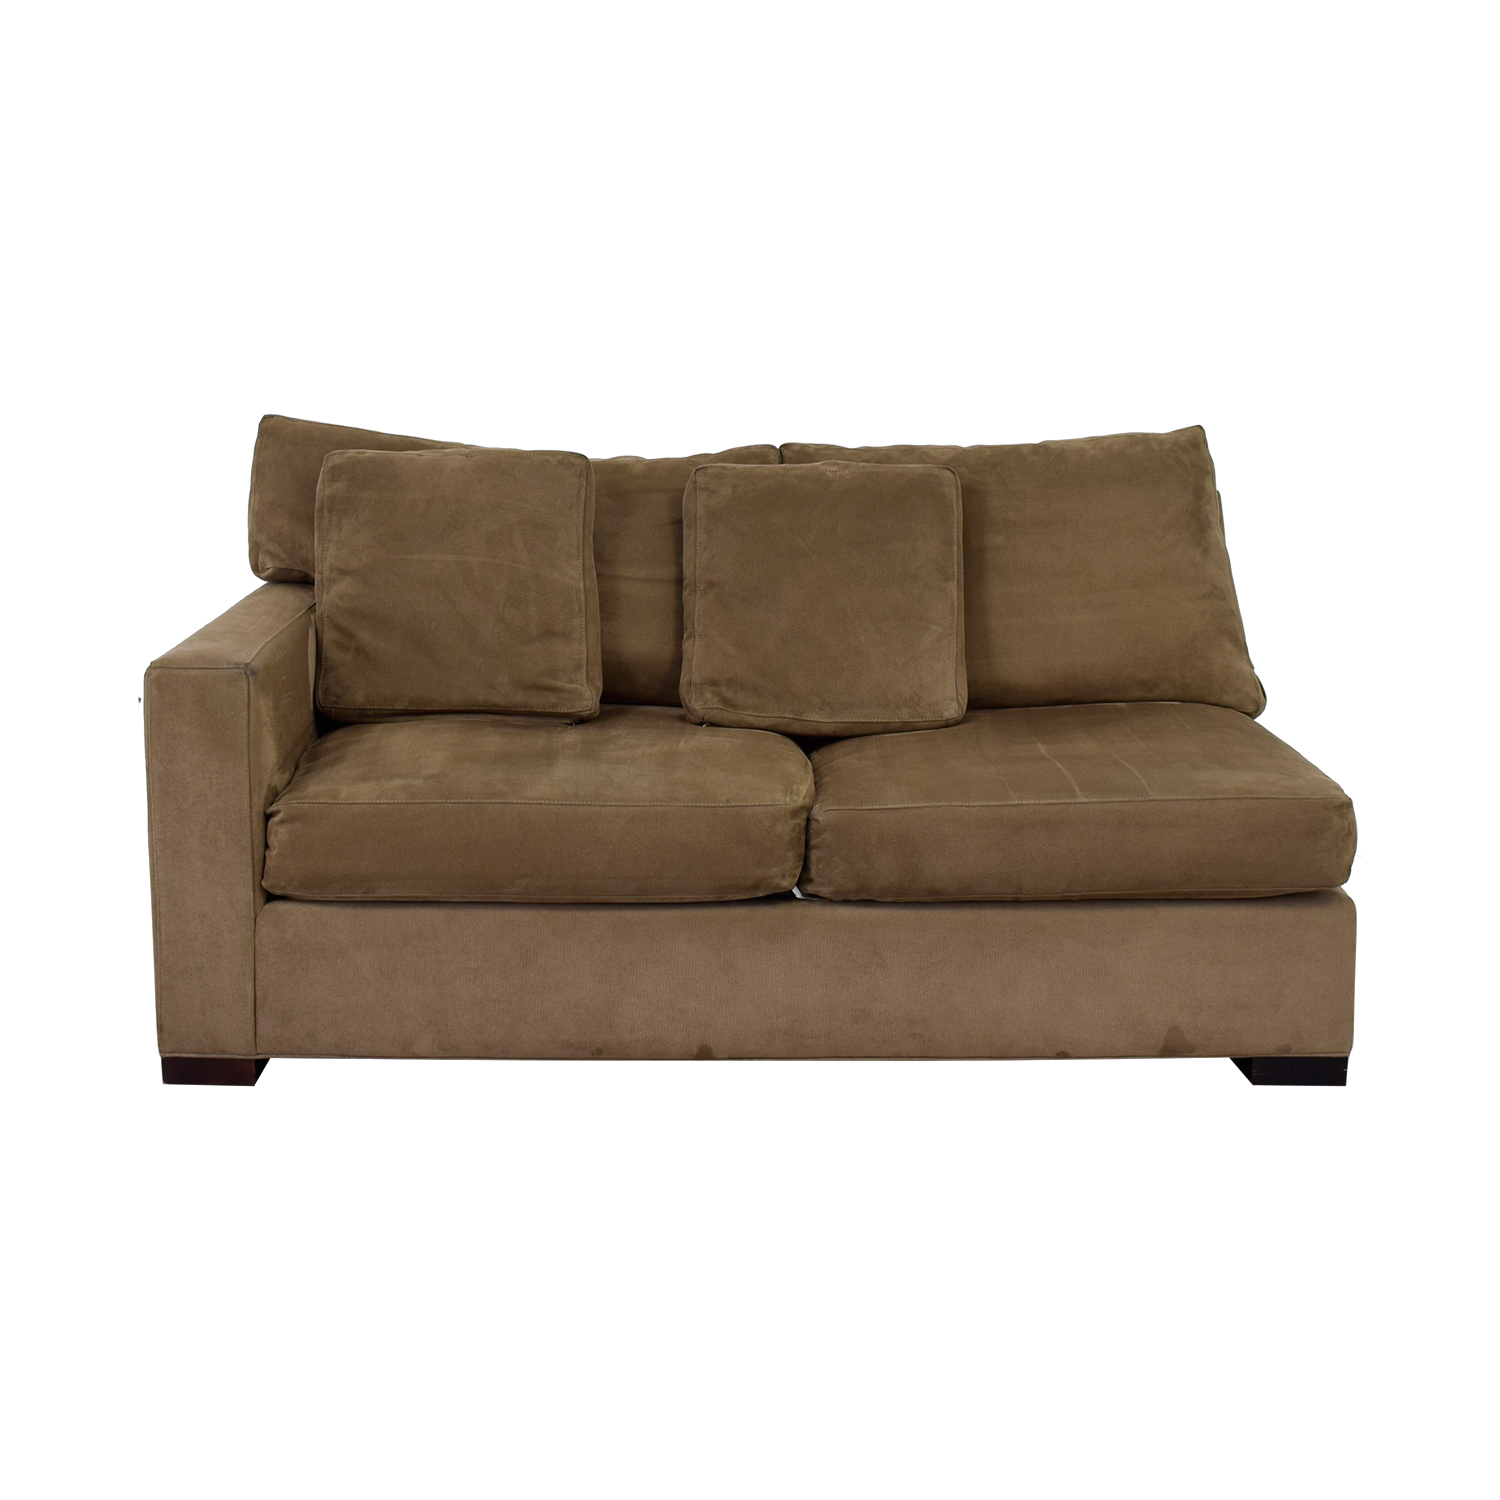 Crate & Barrel Crate & Barrel Grey Two-Cushion One Armed Sofa Gray